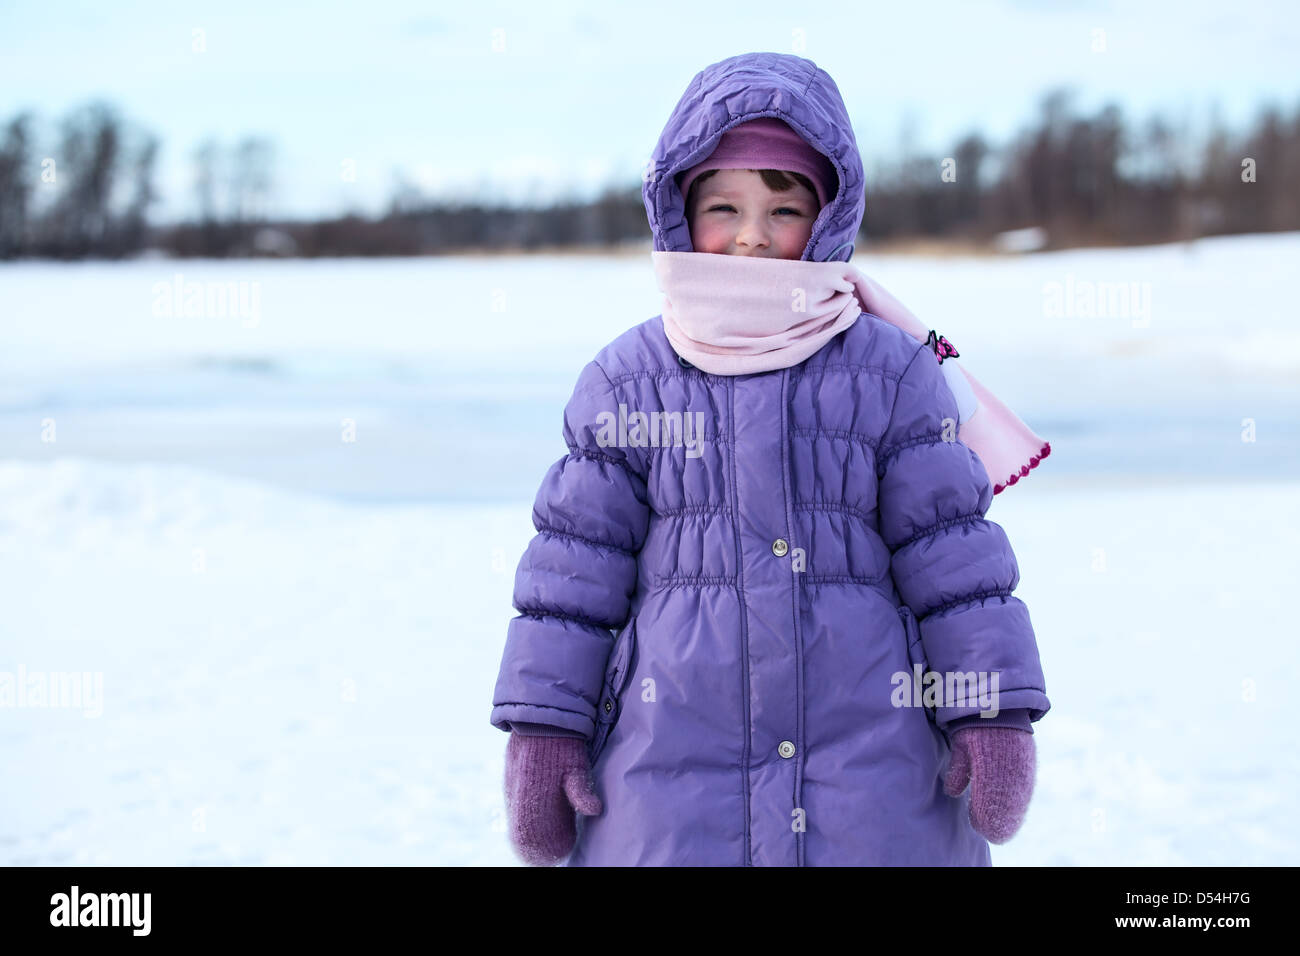 Wrapped In Warm Clothes Small Child Standing Outdoor In